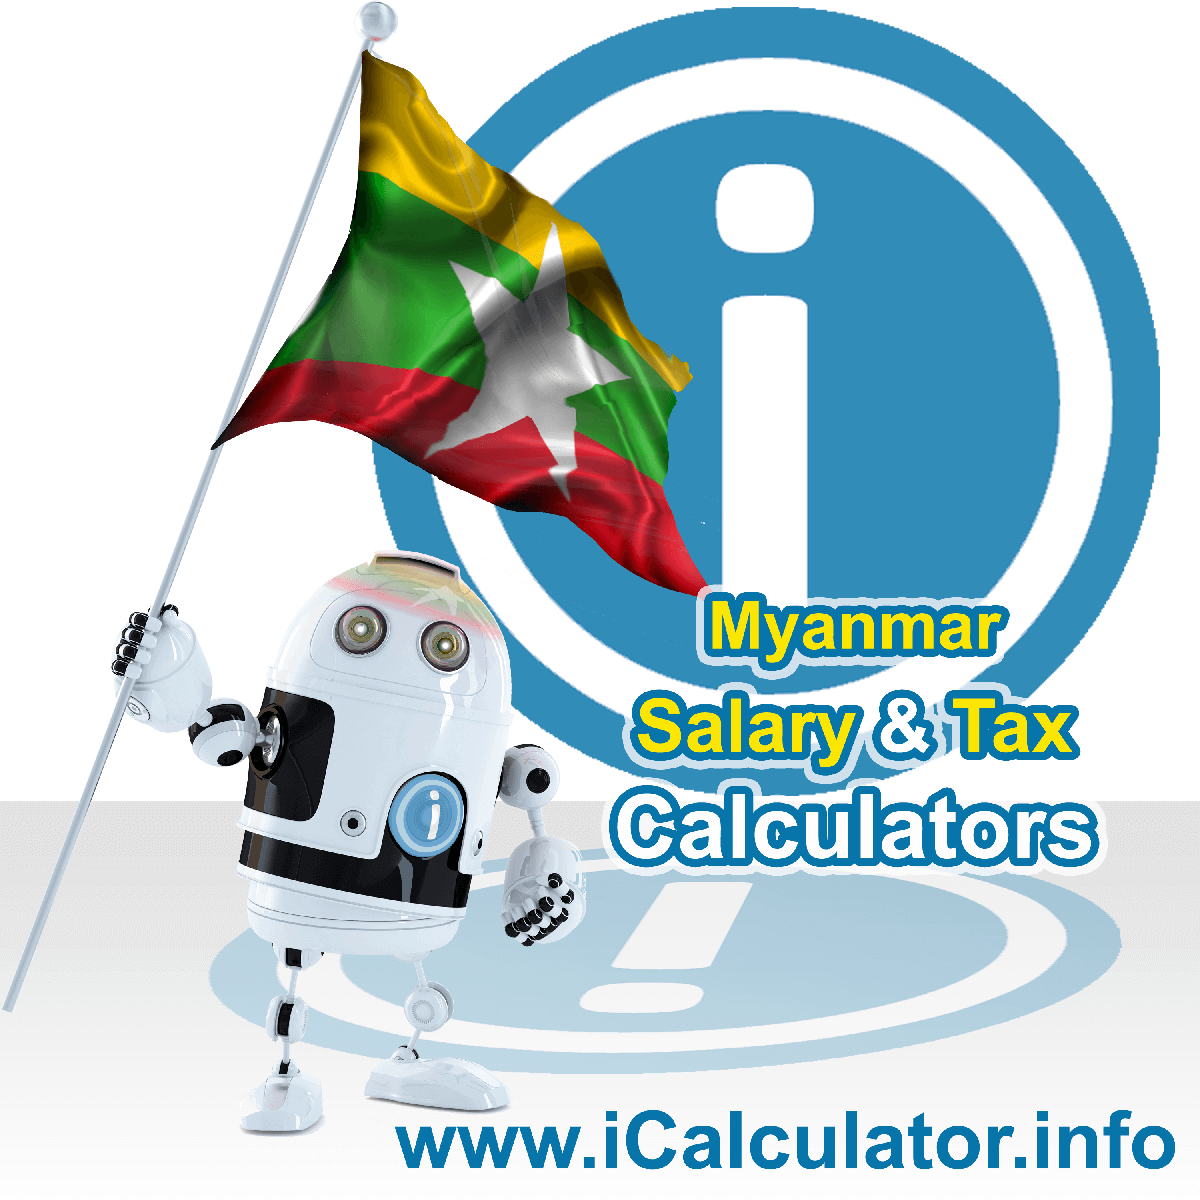 Myanmar Salary Calculator. This image shows the Myanmarese flag and information relating to the tax formula for the Myanmar Tax Calculator